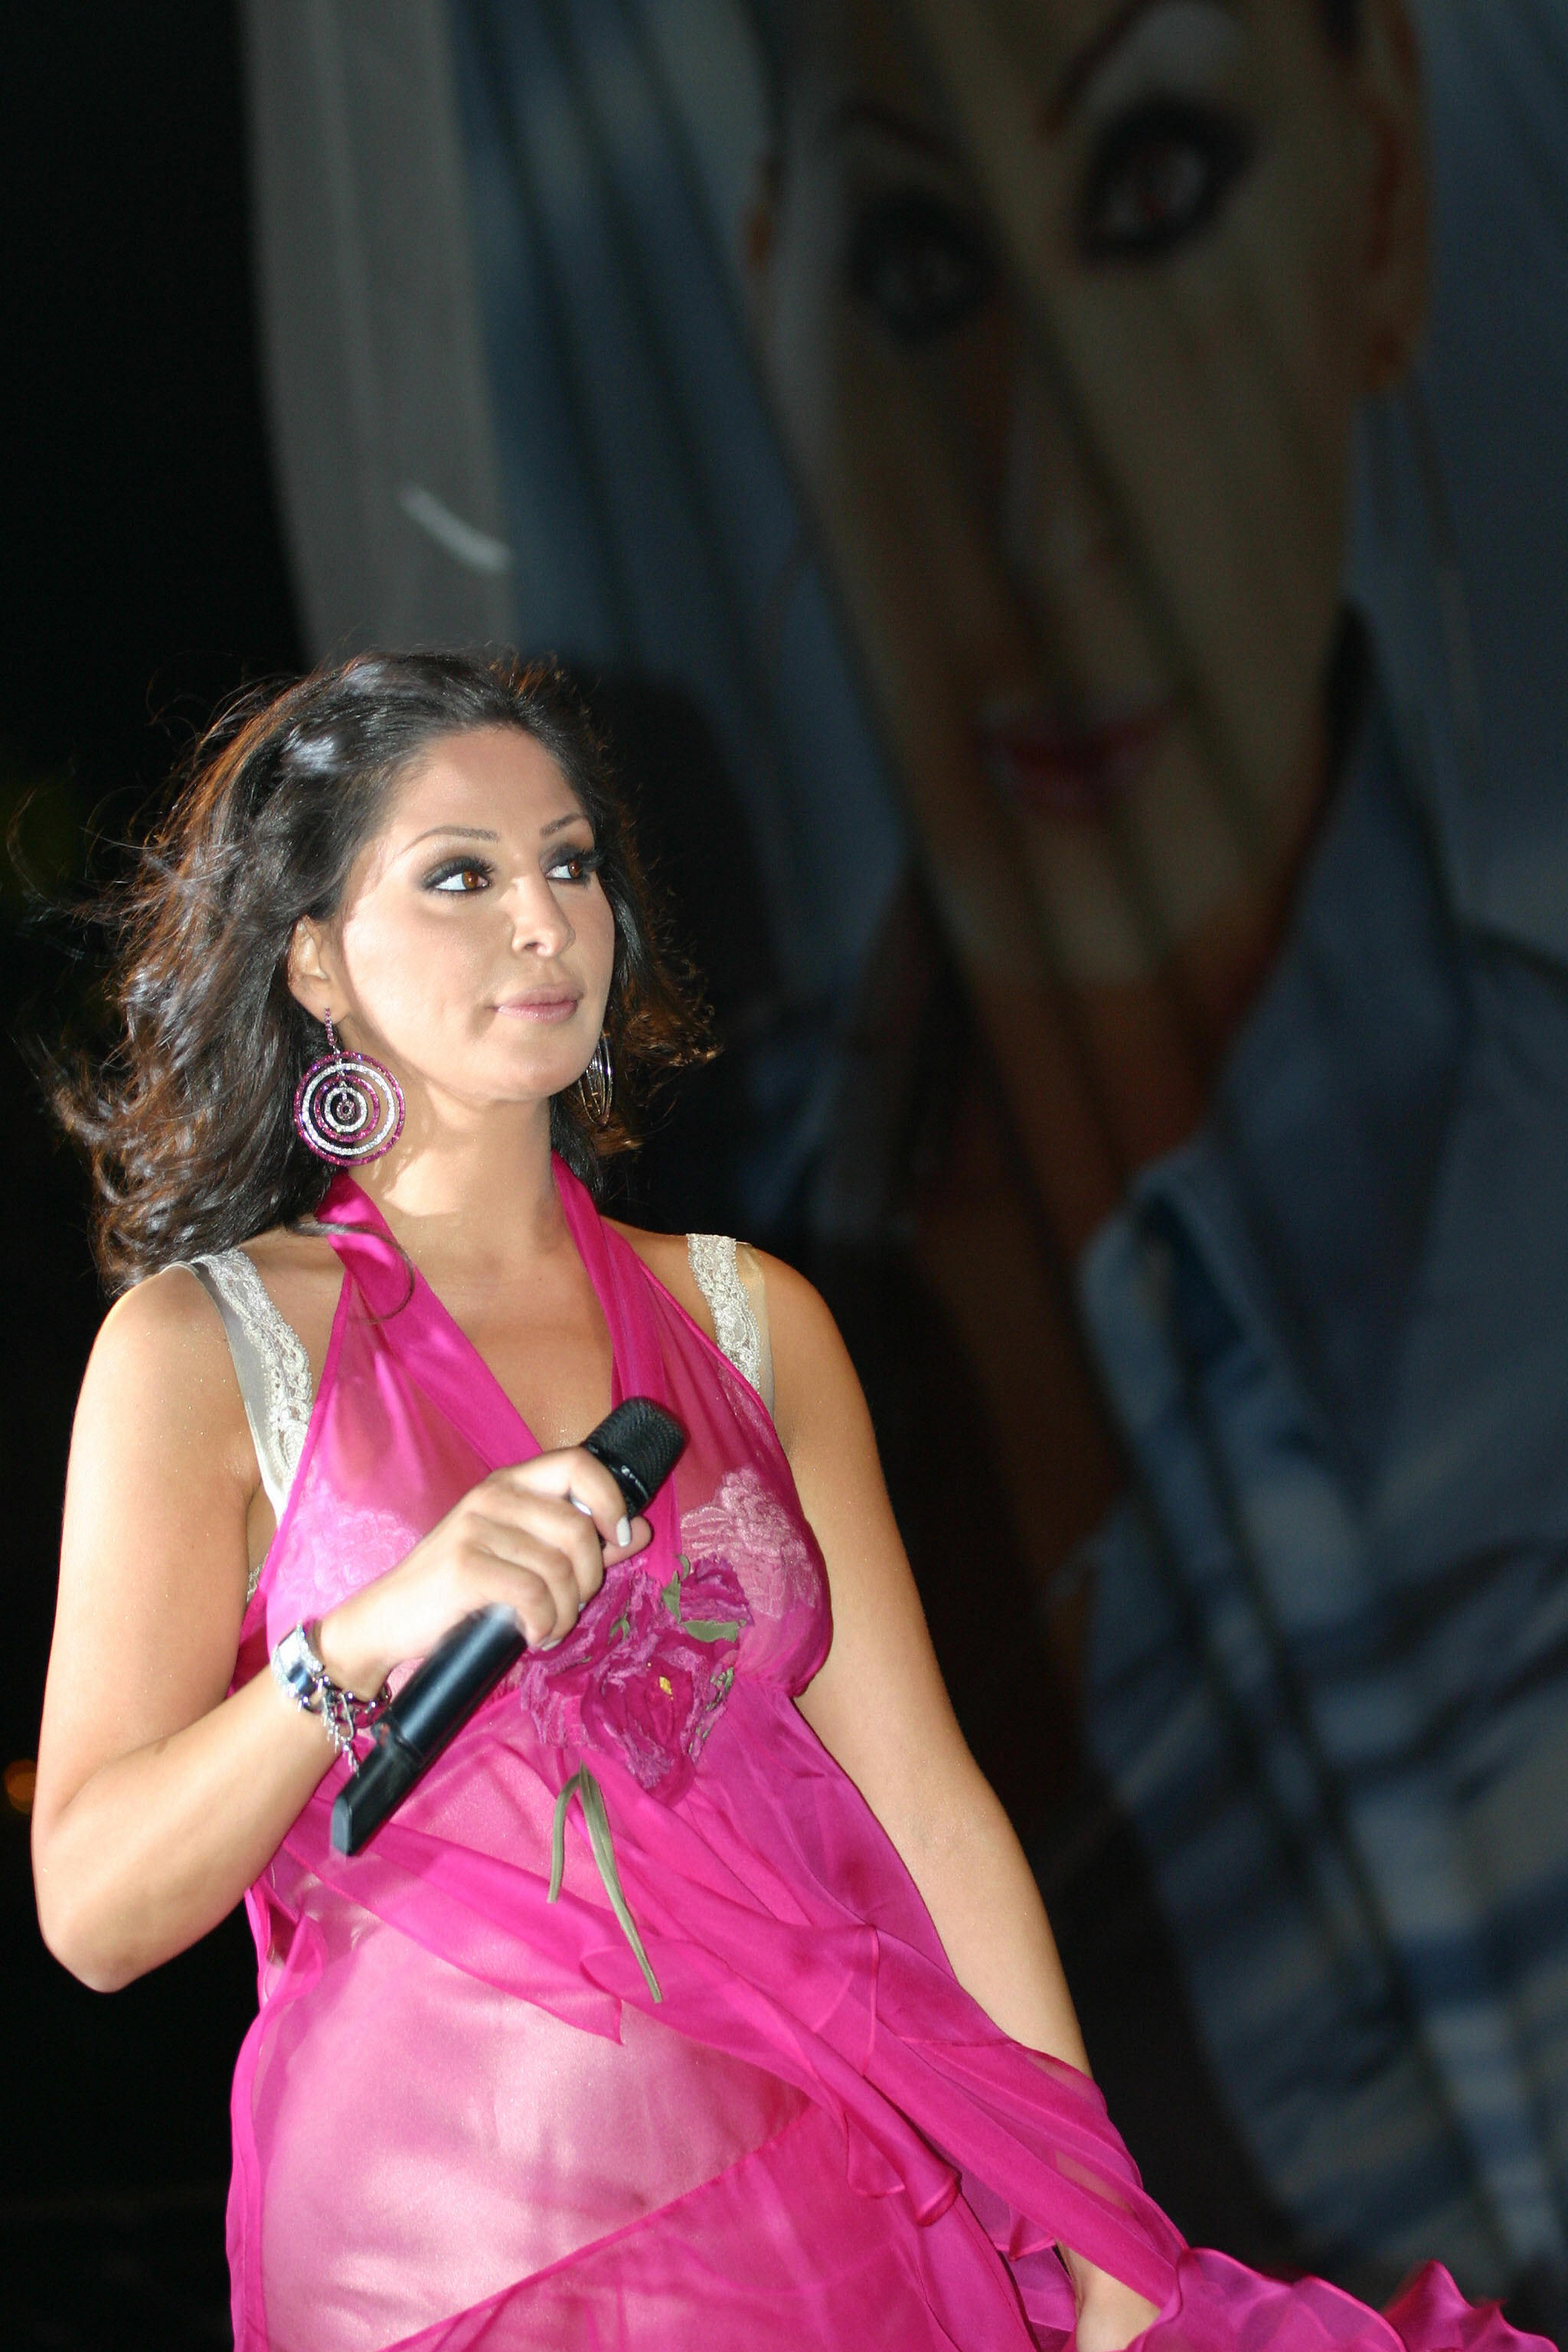 lebanese Pop star elissa HD Wallpaper